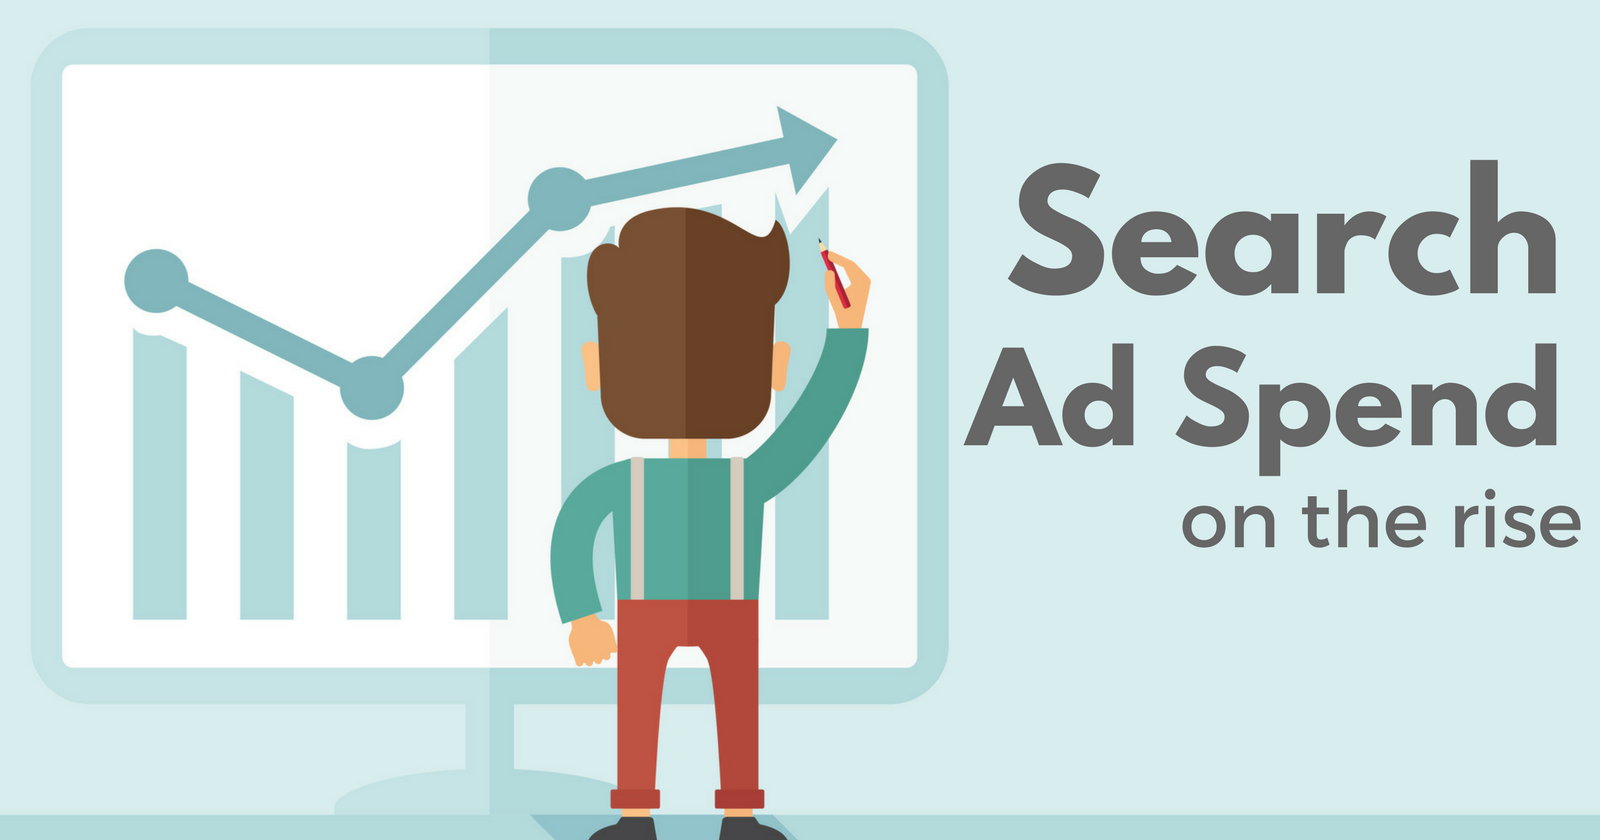 Search Ad Revenue Up 19%, Now 48% of All Digital Ad Revenue [REPORT] by @MattGSouthern